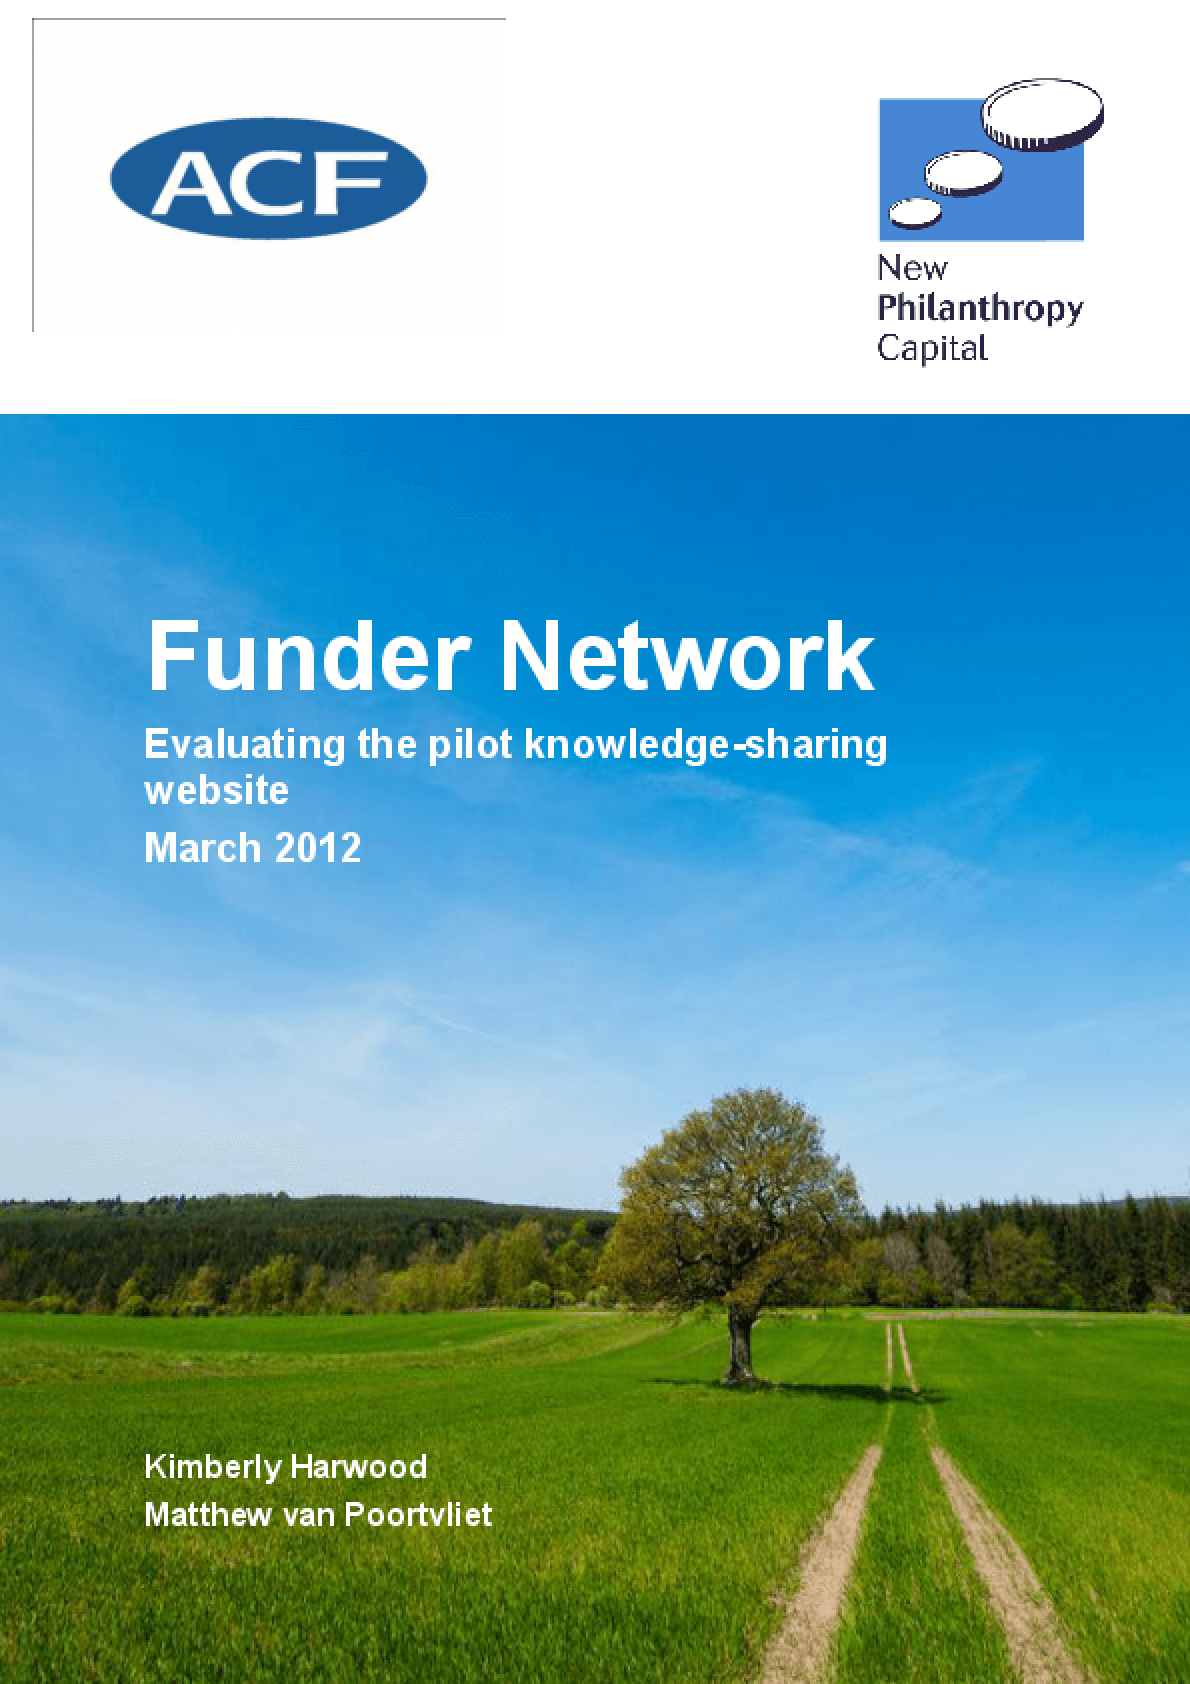 Funder Network: Evaluating the Pilot Knowledge-Sharing Website